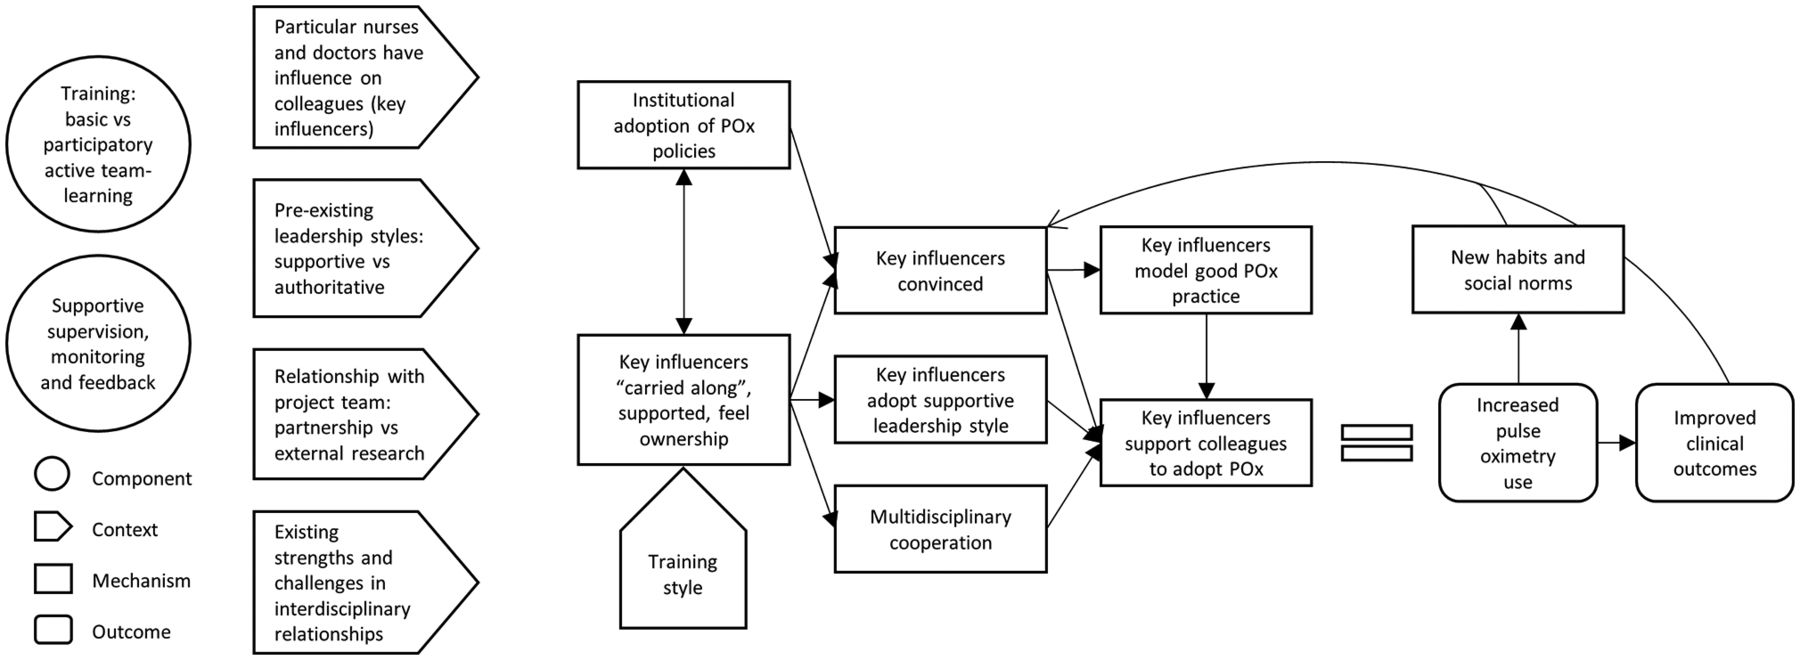 Adoption of paediatric and neonatal pulse oximetry by 12